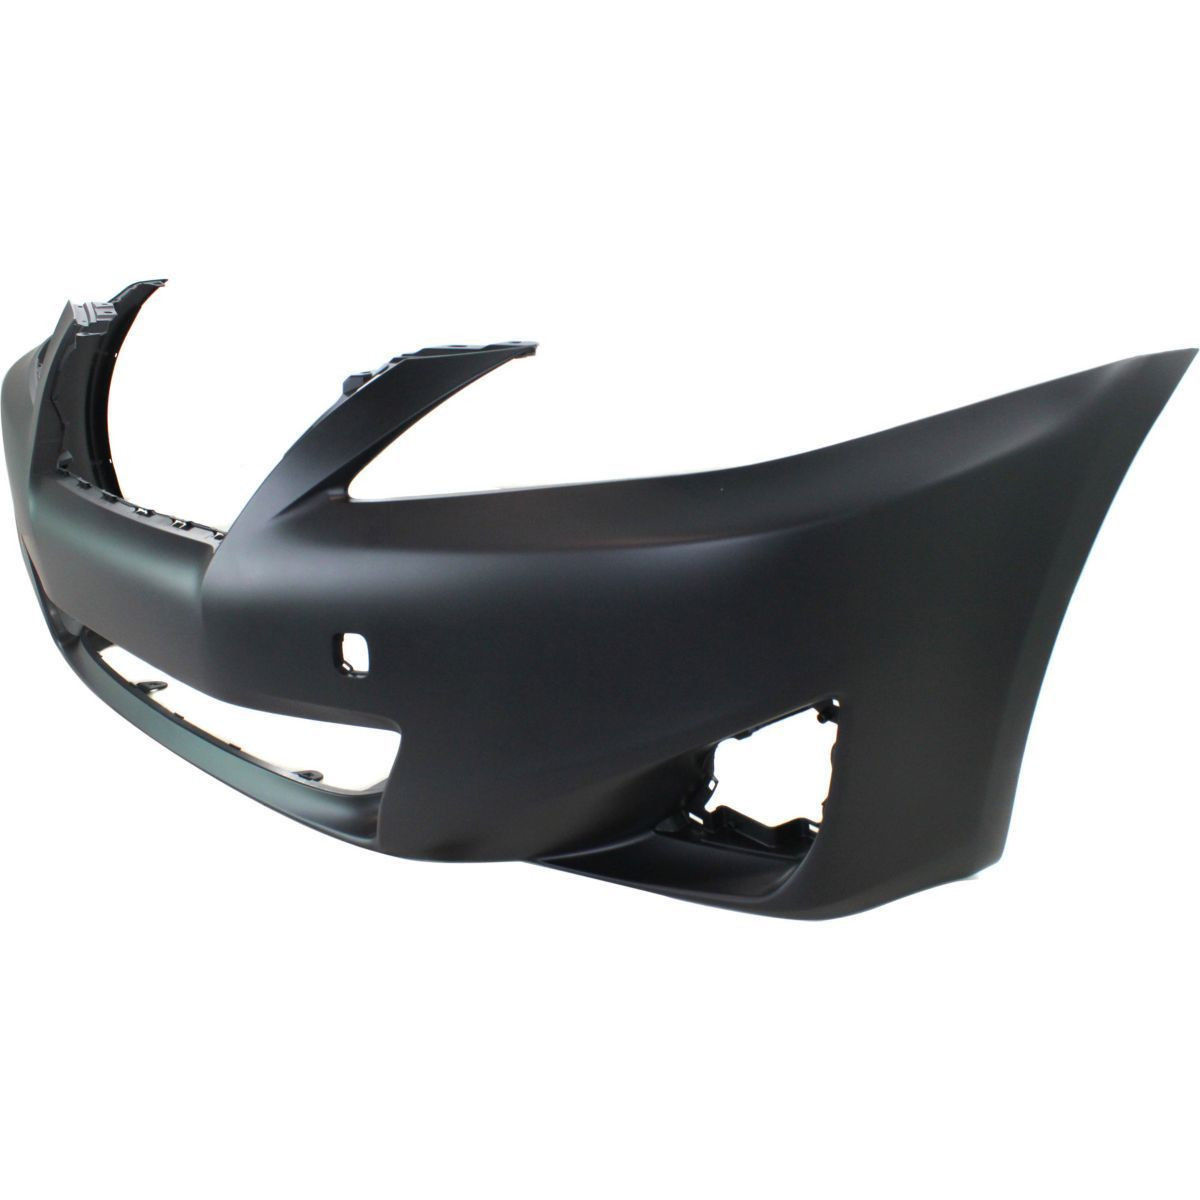 2011-2013 LEXUS IS350 Front Bumper Cover w/o Headlamp Washer  w/o Park Distance Sensors Painted to Match